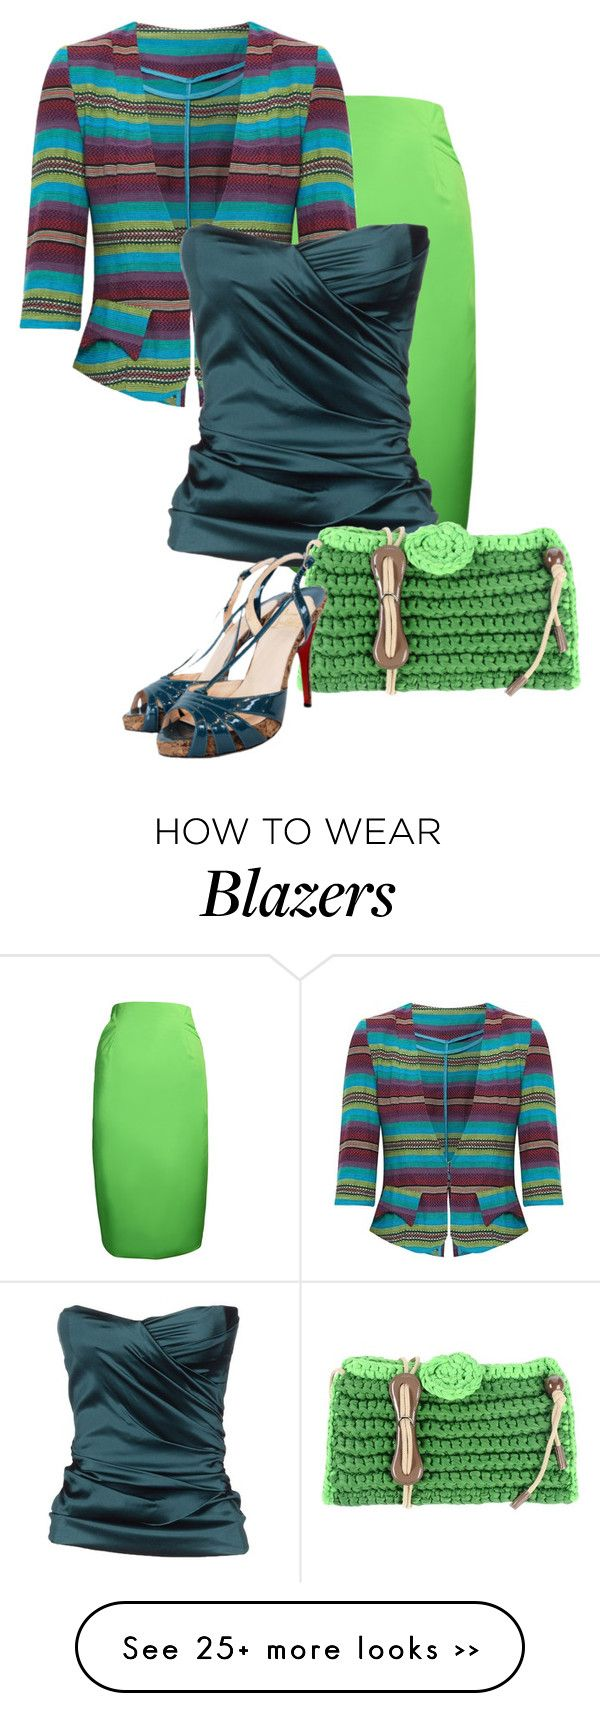 """teal & lime"" by rvazquez on Polyvore"